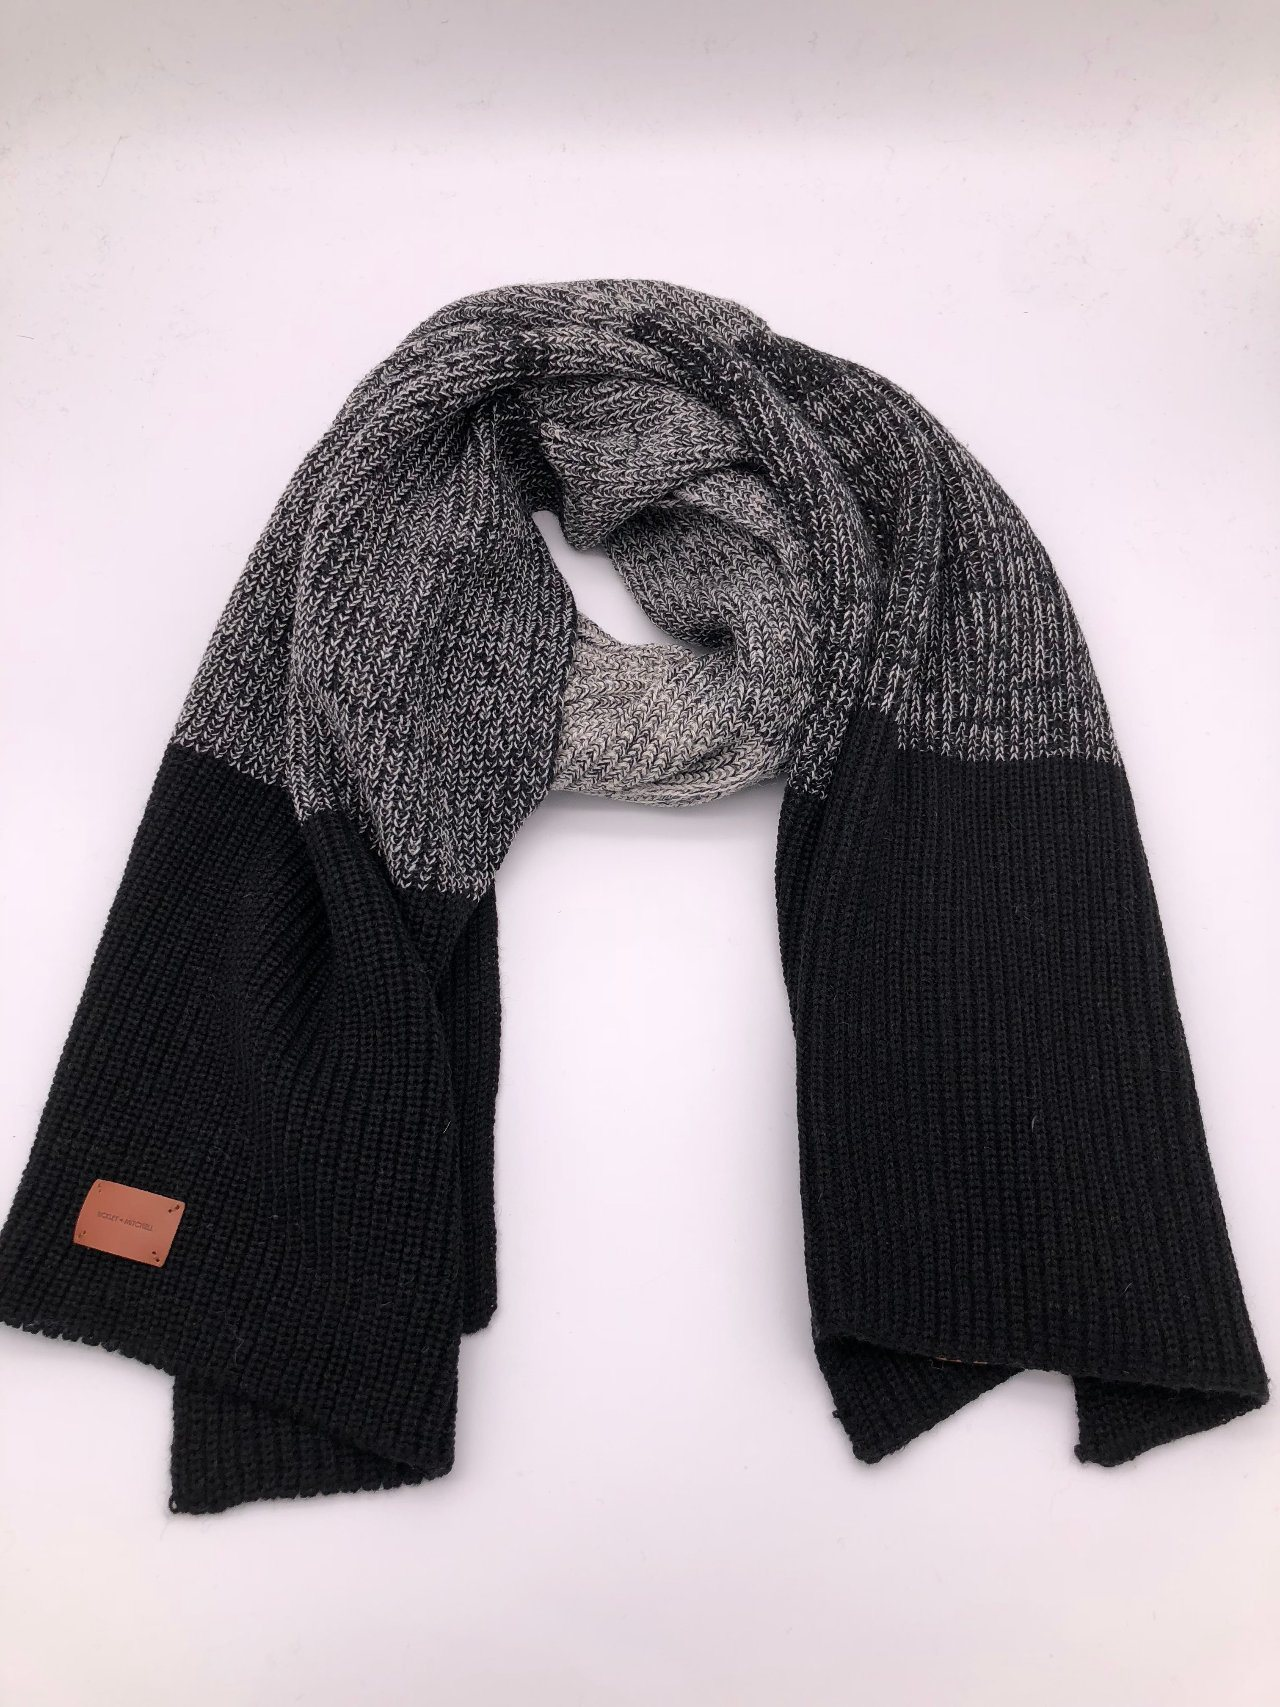 Wholesale Knitted Fashion Scarf Buy Reliable Knitted Fashion Scarf From Knitted Fashion Scarf Wholesalers On Made In China Com